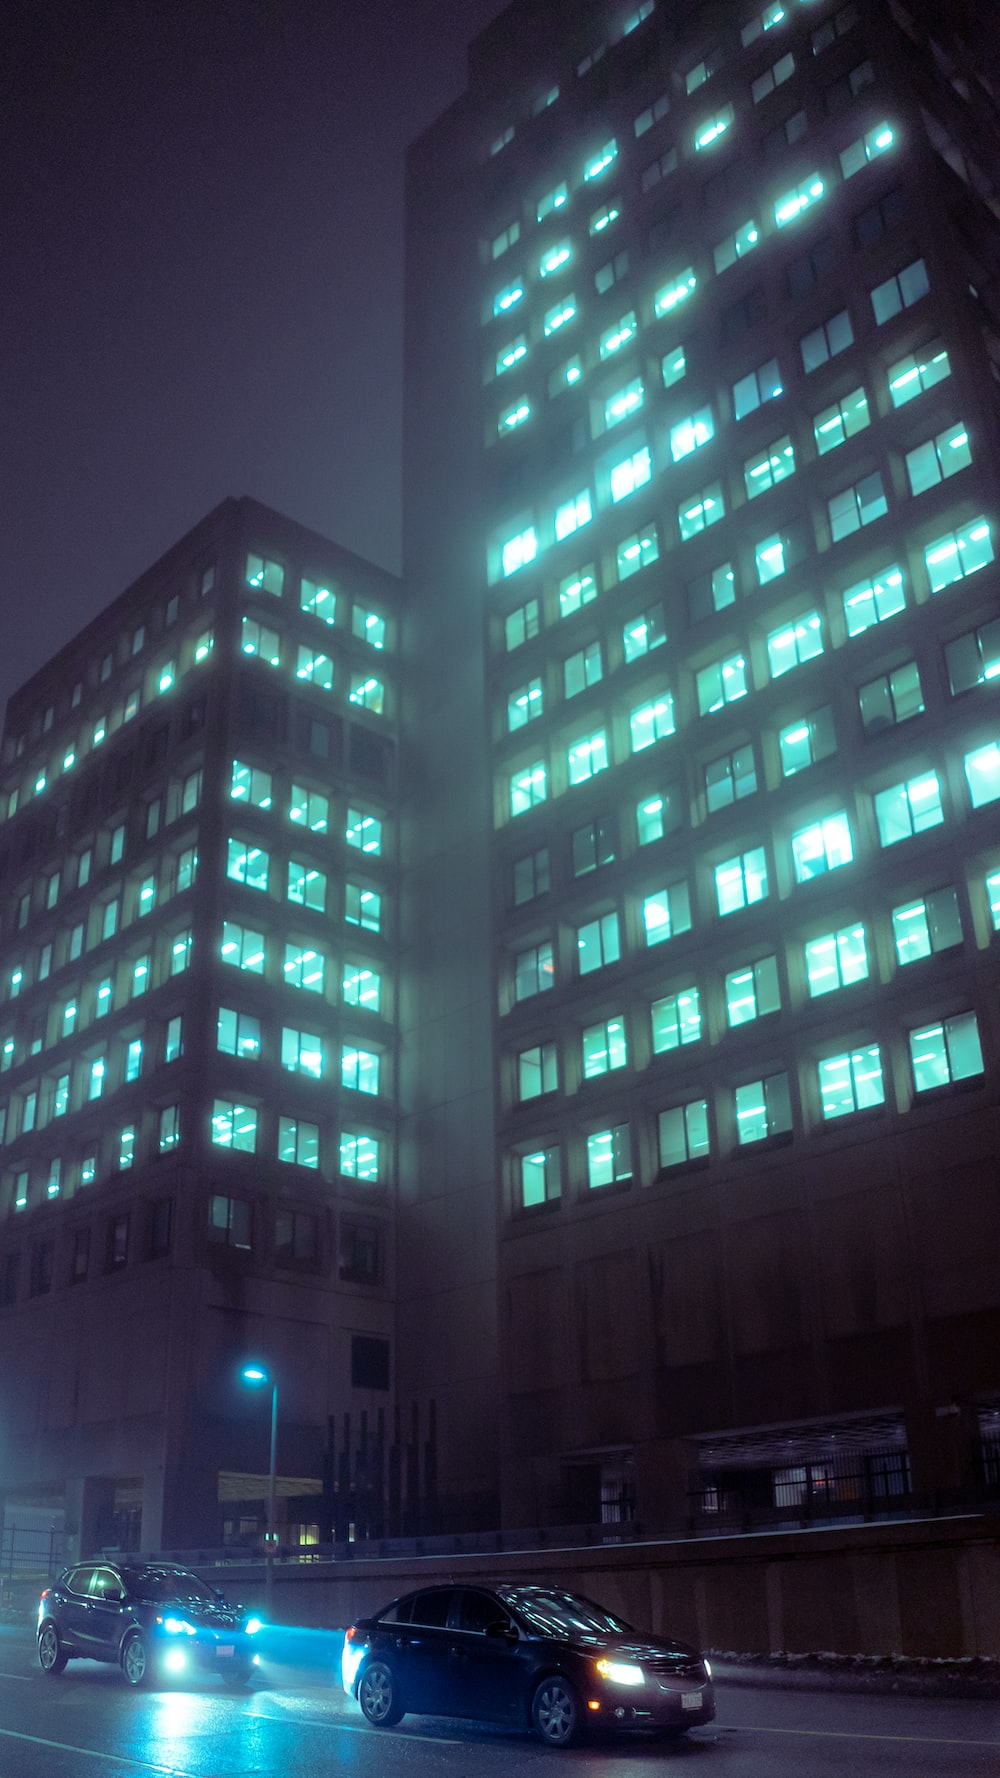 blue and white high rise building